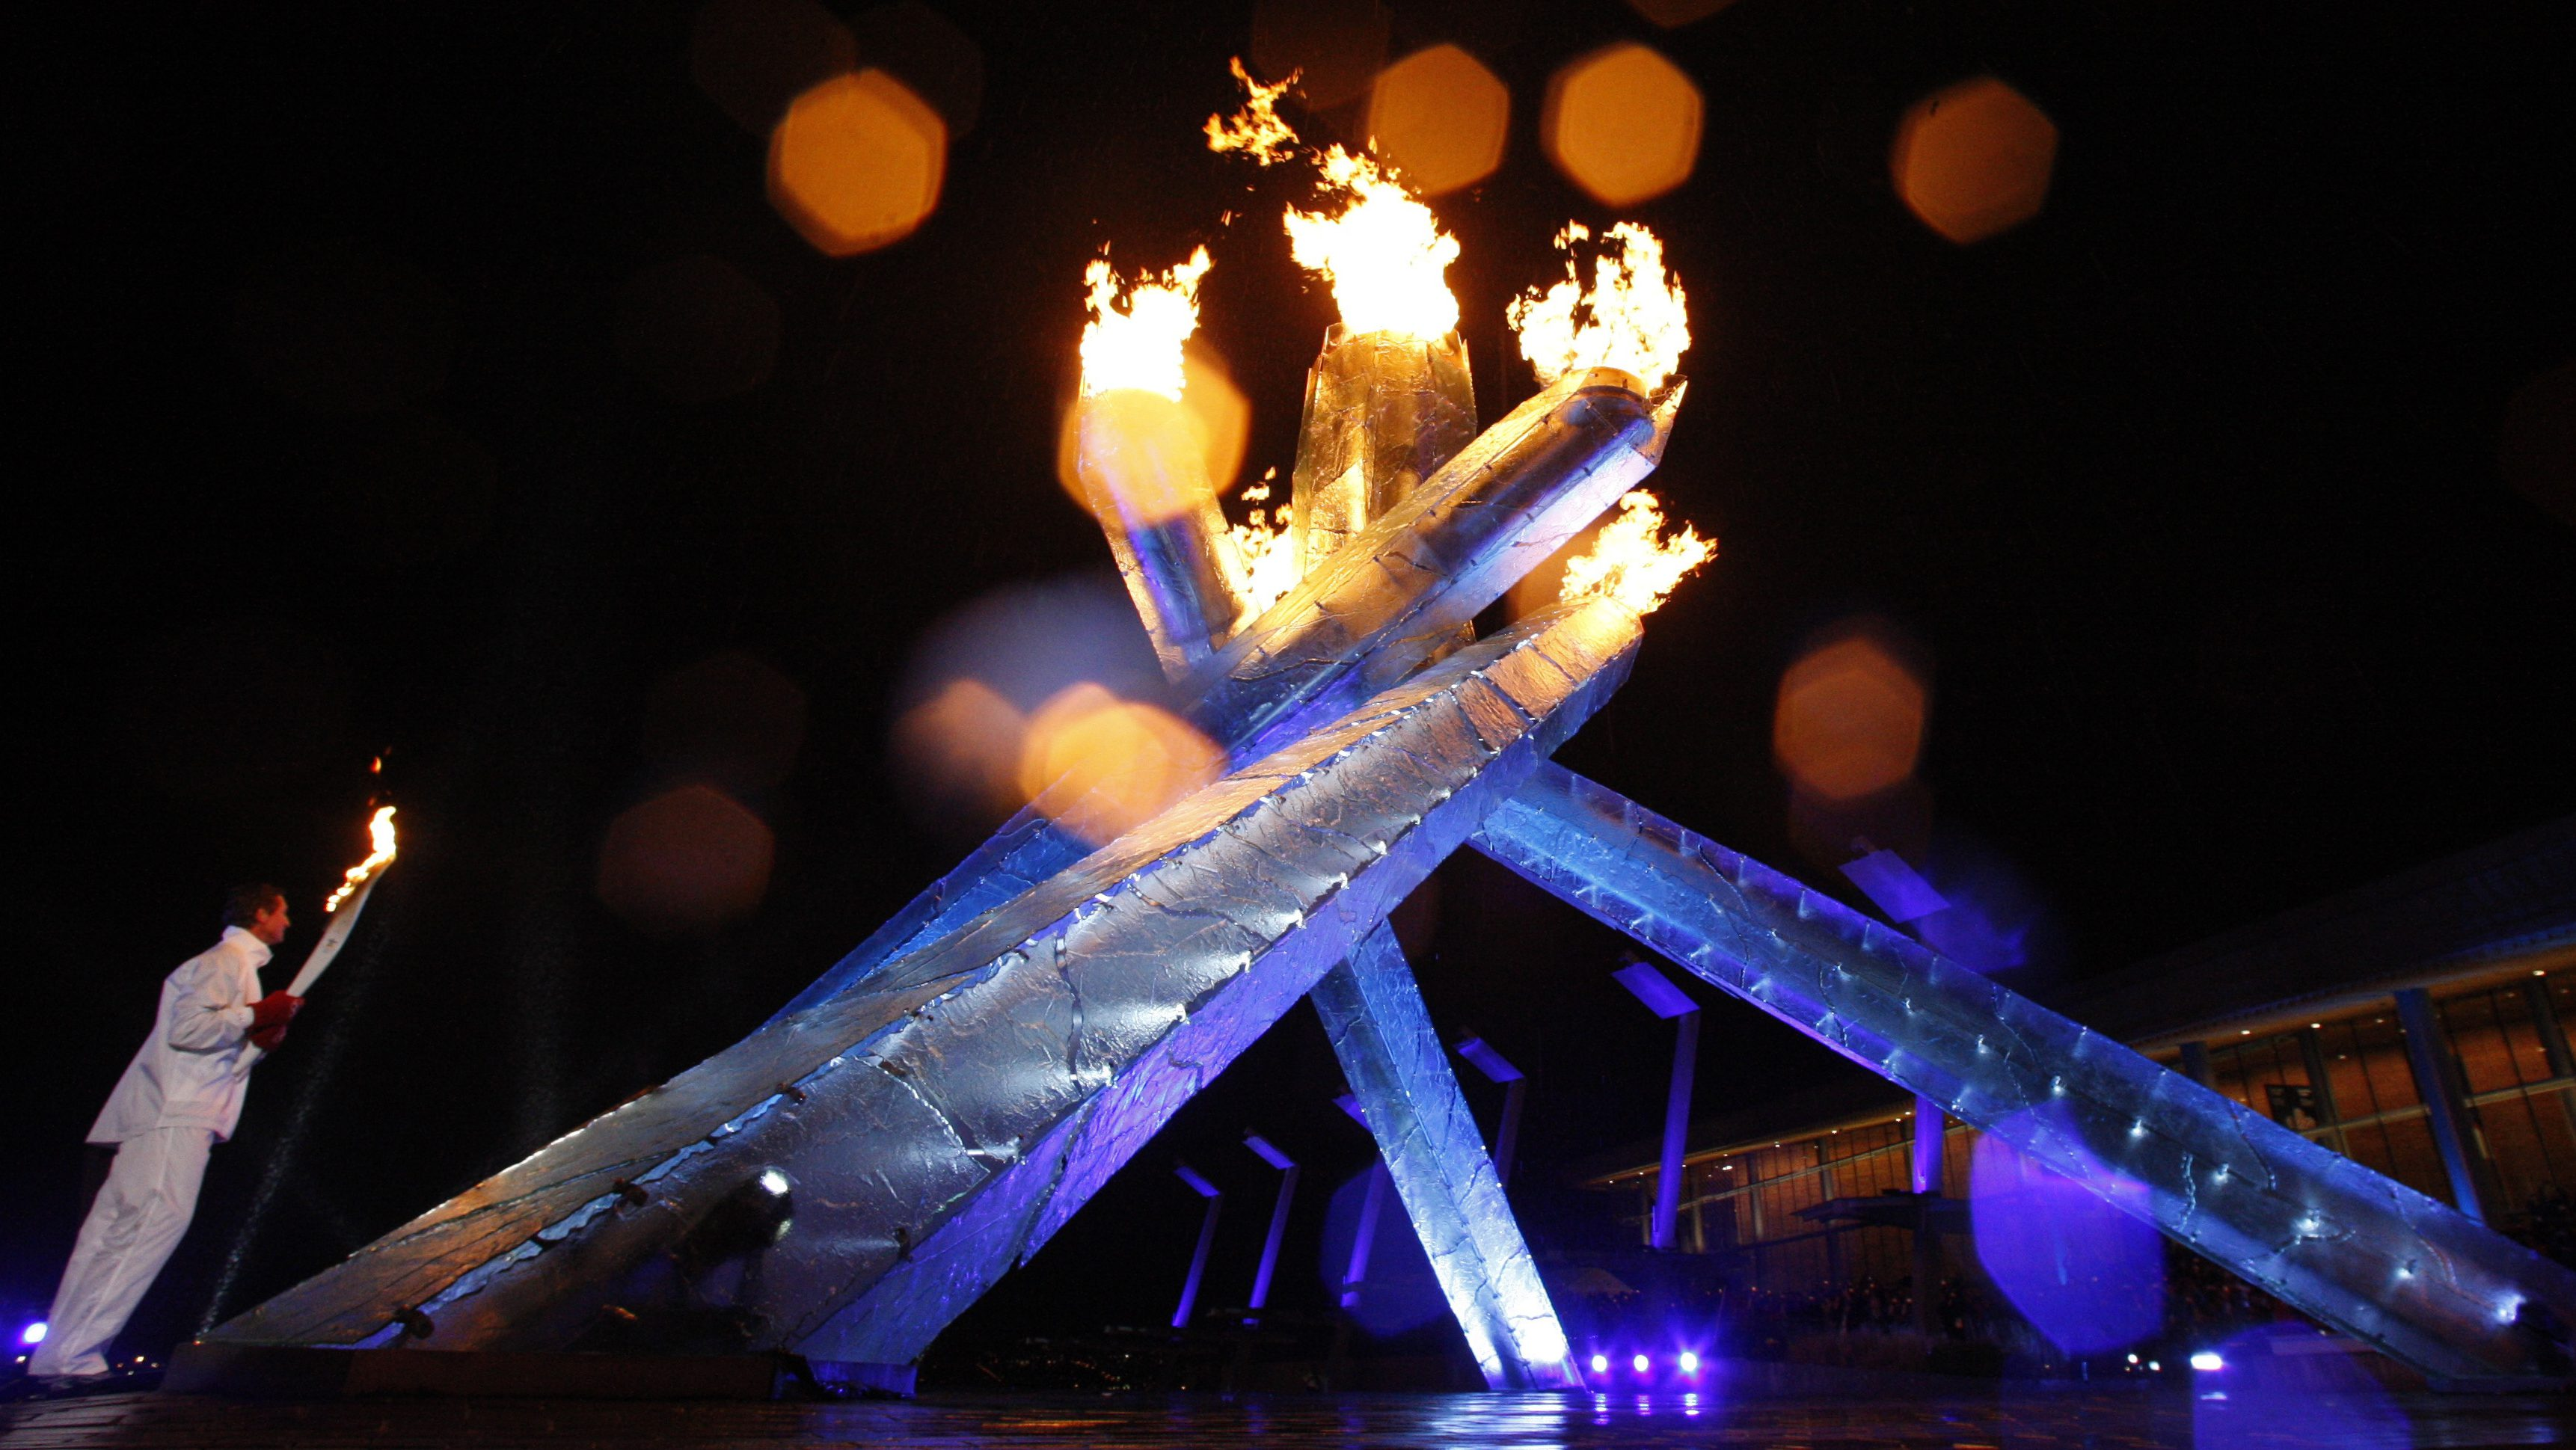 The Olympic flame burns in the permanent cauldron after it was lit by Canadian hockey legend Wayne Gretzky during the opening ceremony of the Vancouver 2010 Winter Olympics February 12, 2010. REUTERS/Hans Deryk (CANADA) - RTR2A6E5